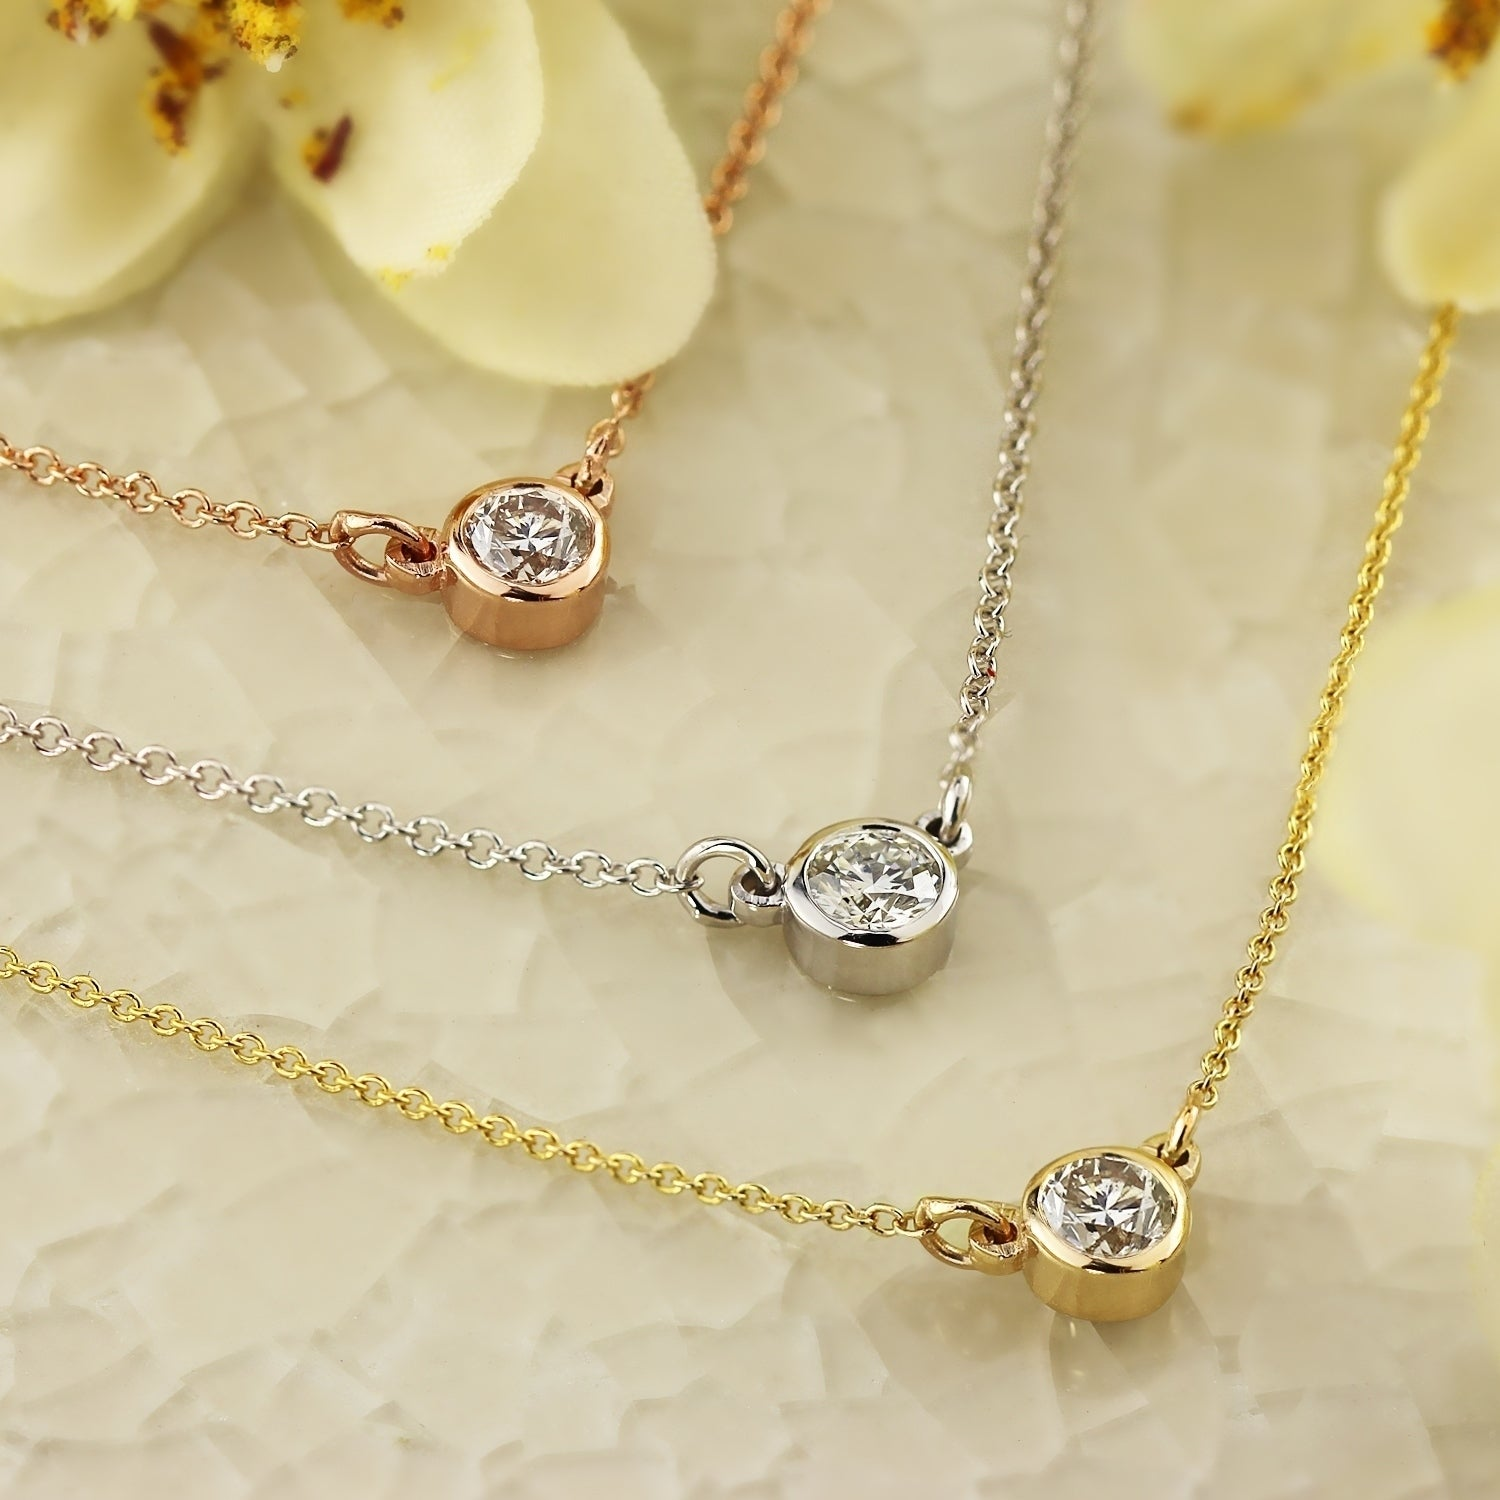 Rose, Pendant Necklaces | Find Great Jewelry Deals Shopping at ...